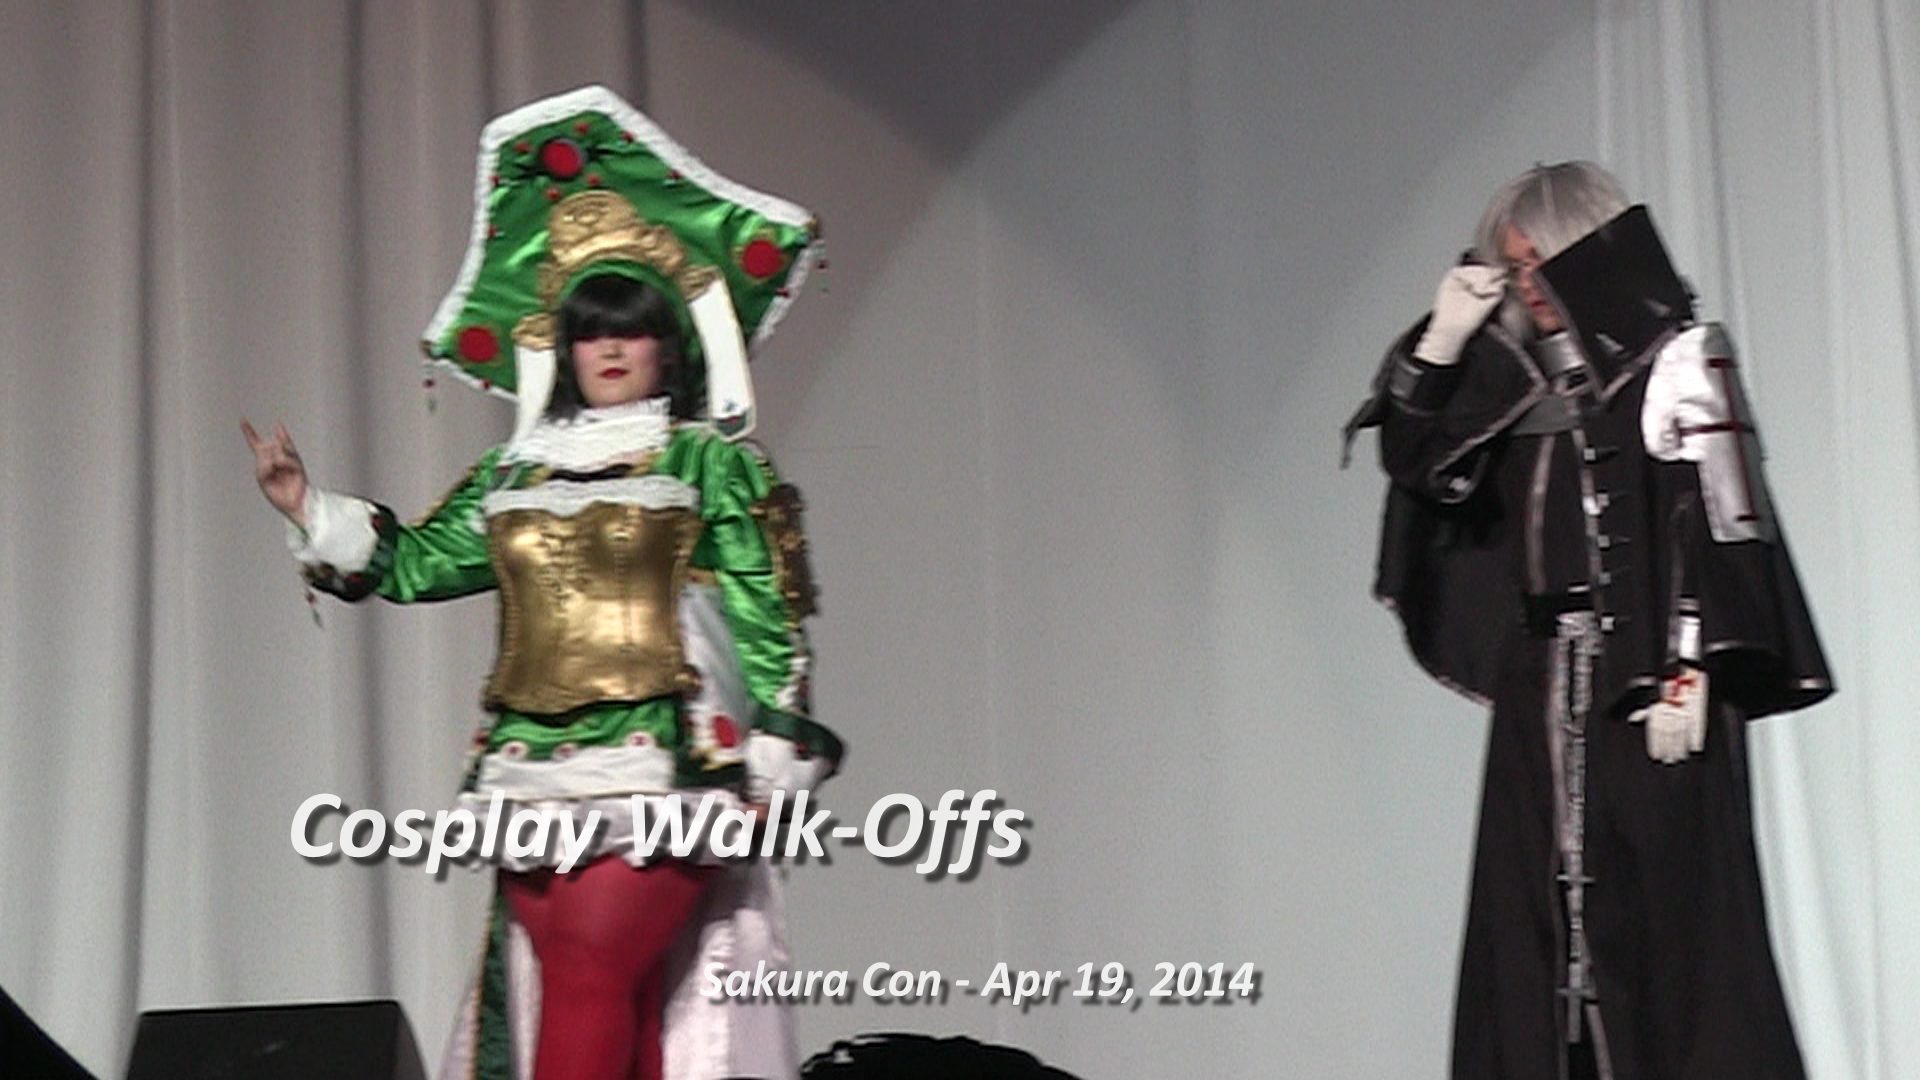 Cosplay Walk-Offs 1 to 10